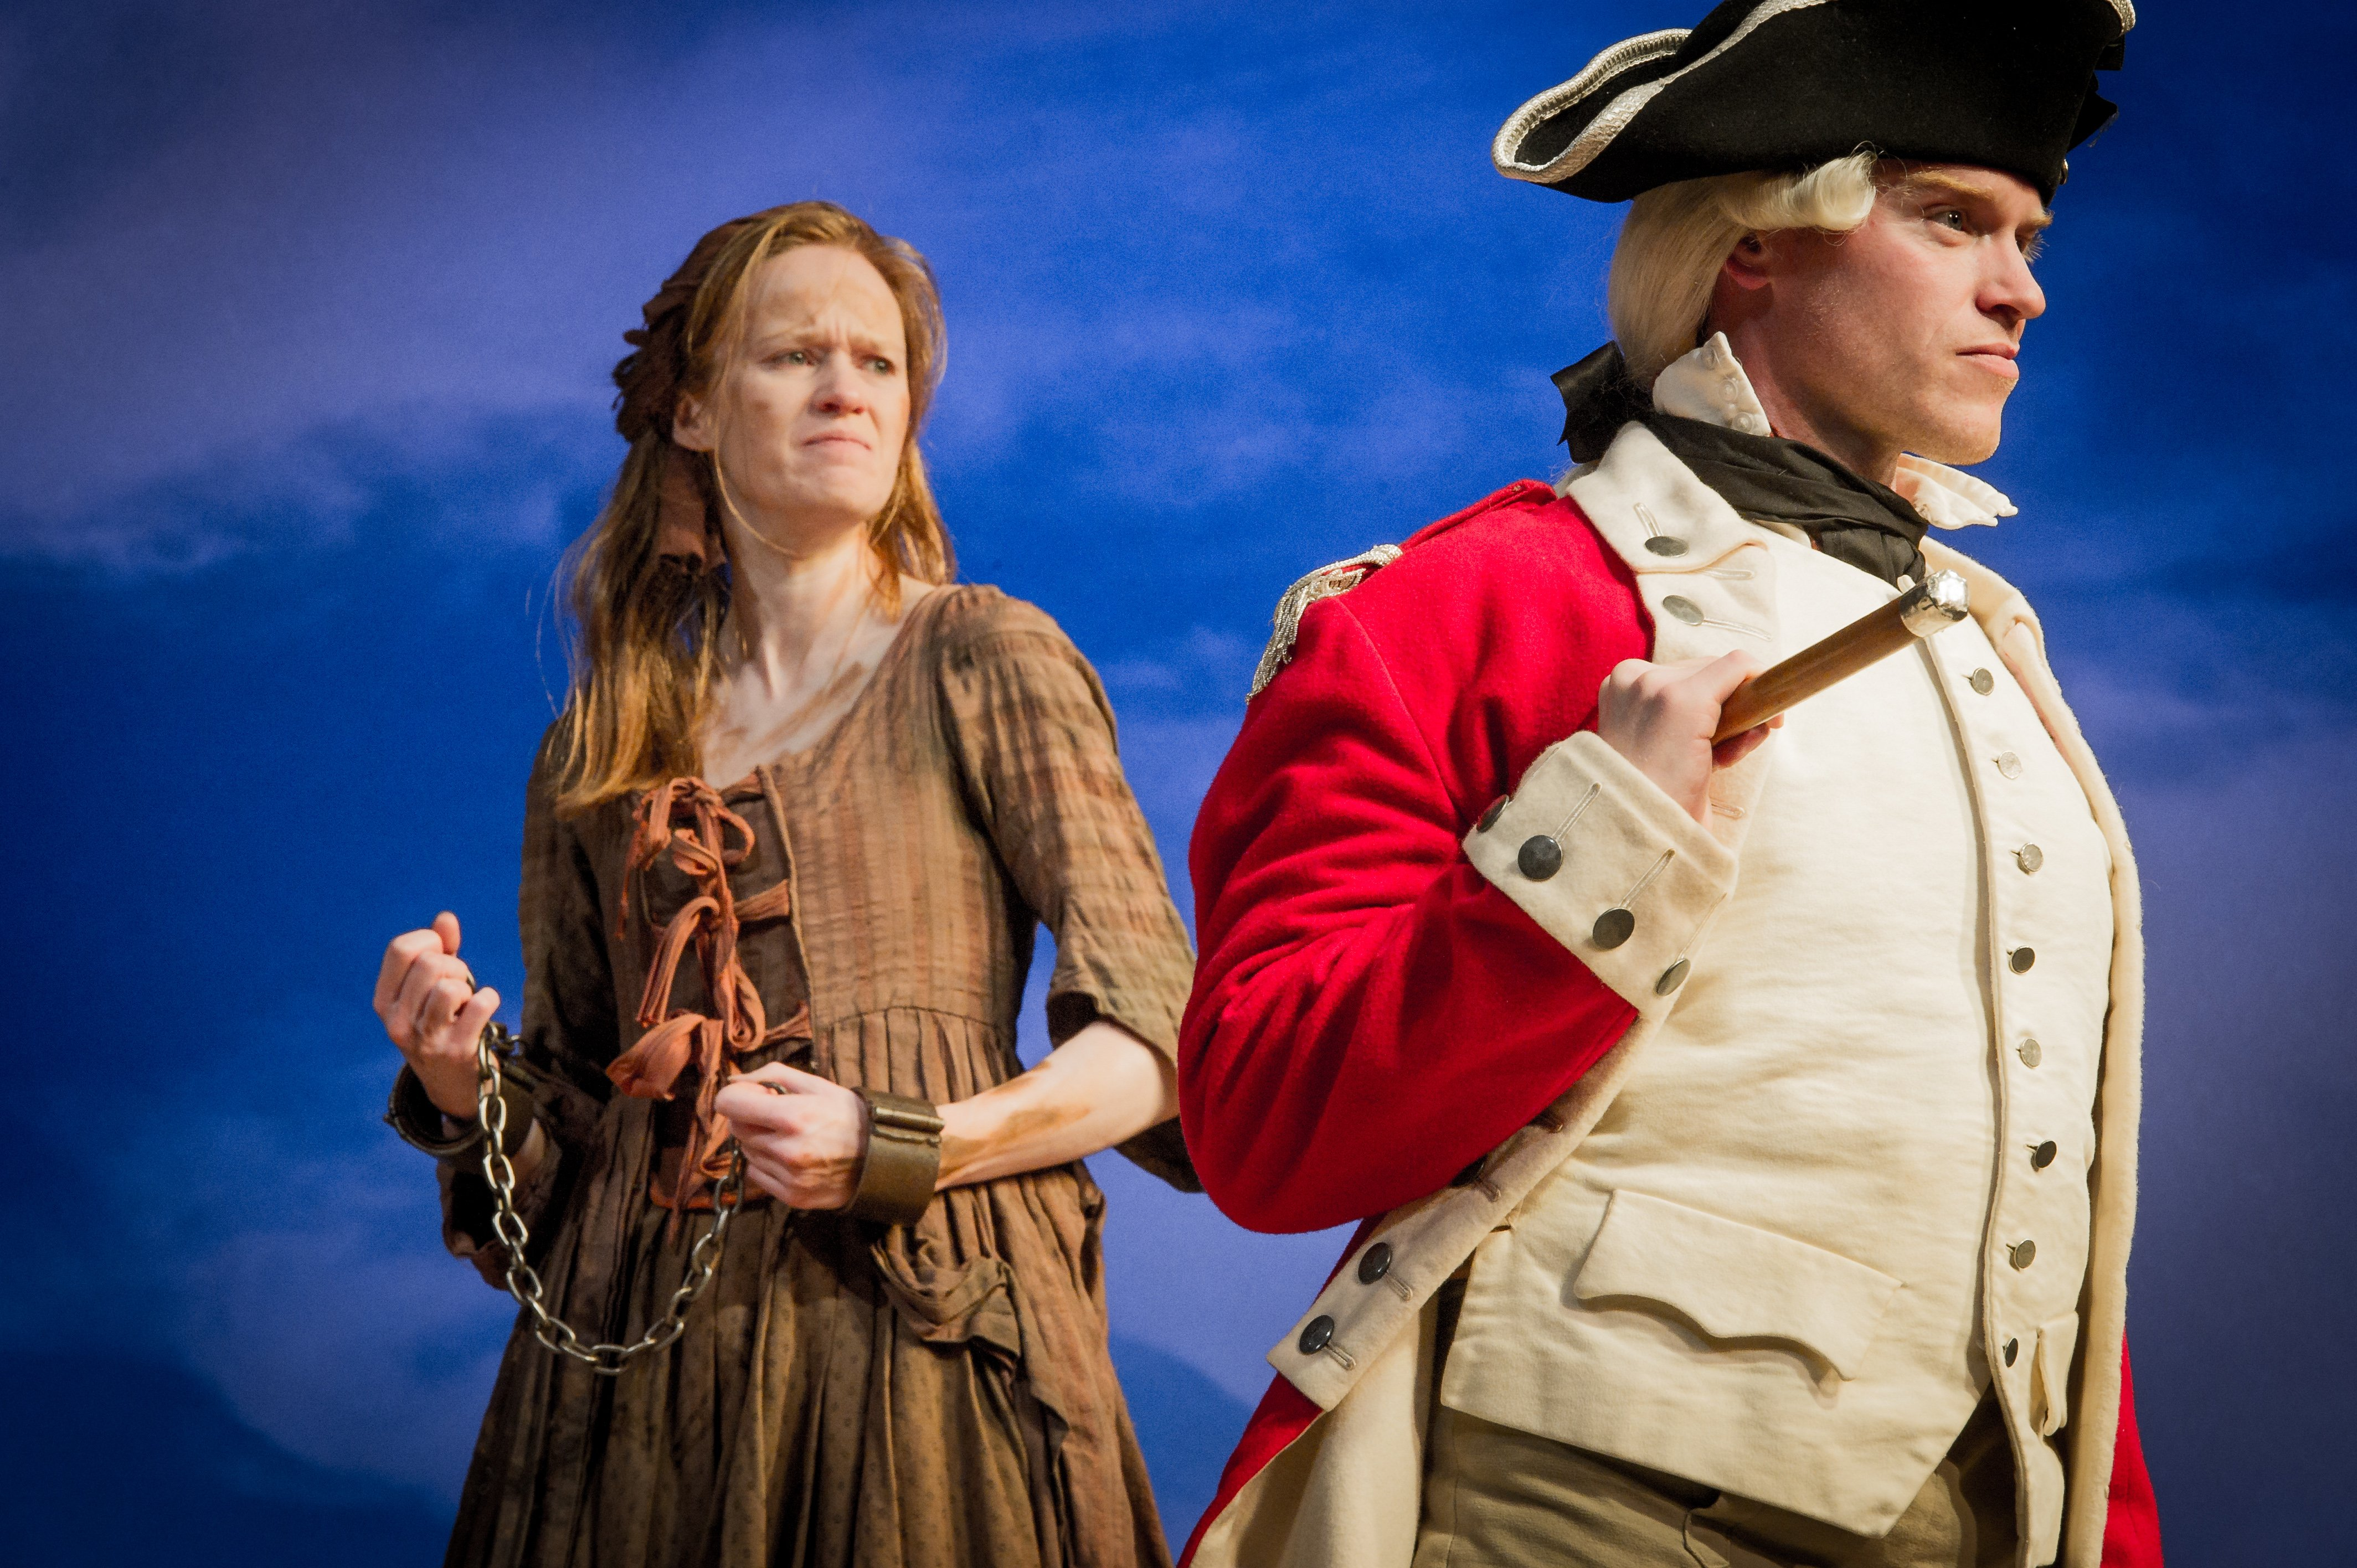 Major Ross (Richard Neale) interferes with convict Liz Morden (Kathryn O'Reilly)'s rehearsal process in Our Country's Good. Photo by Robert Workman.